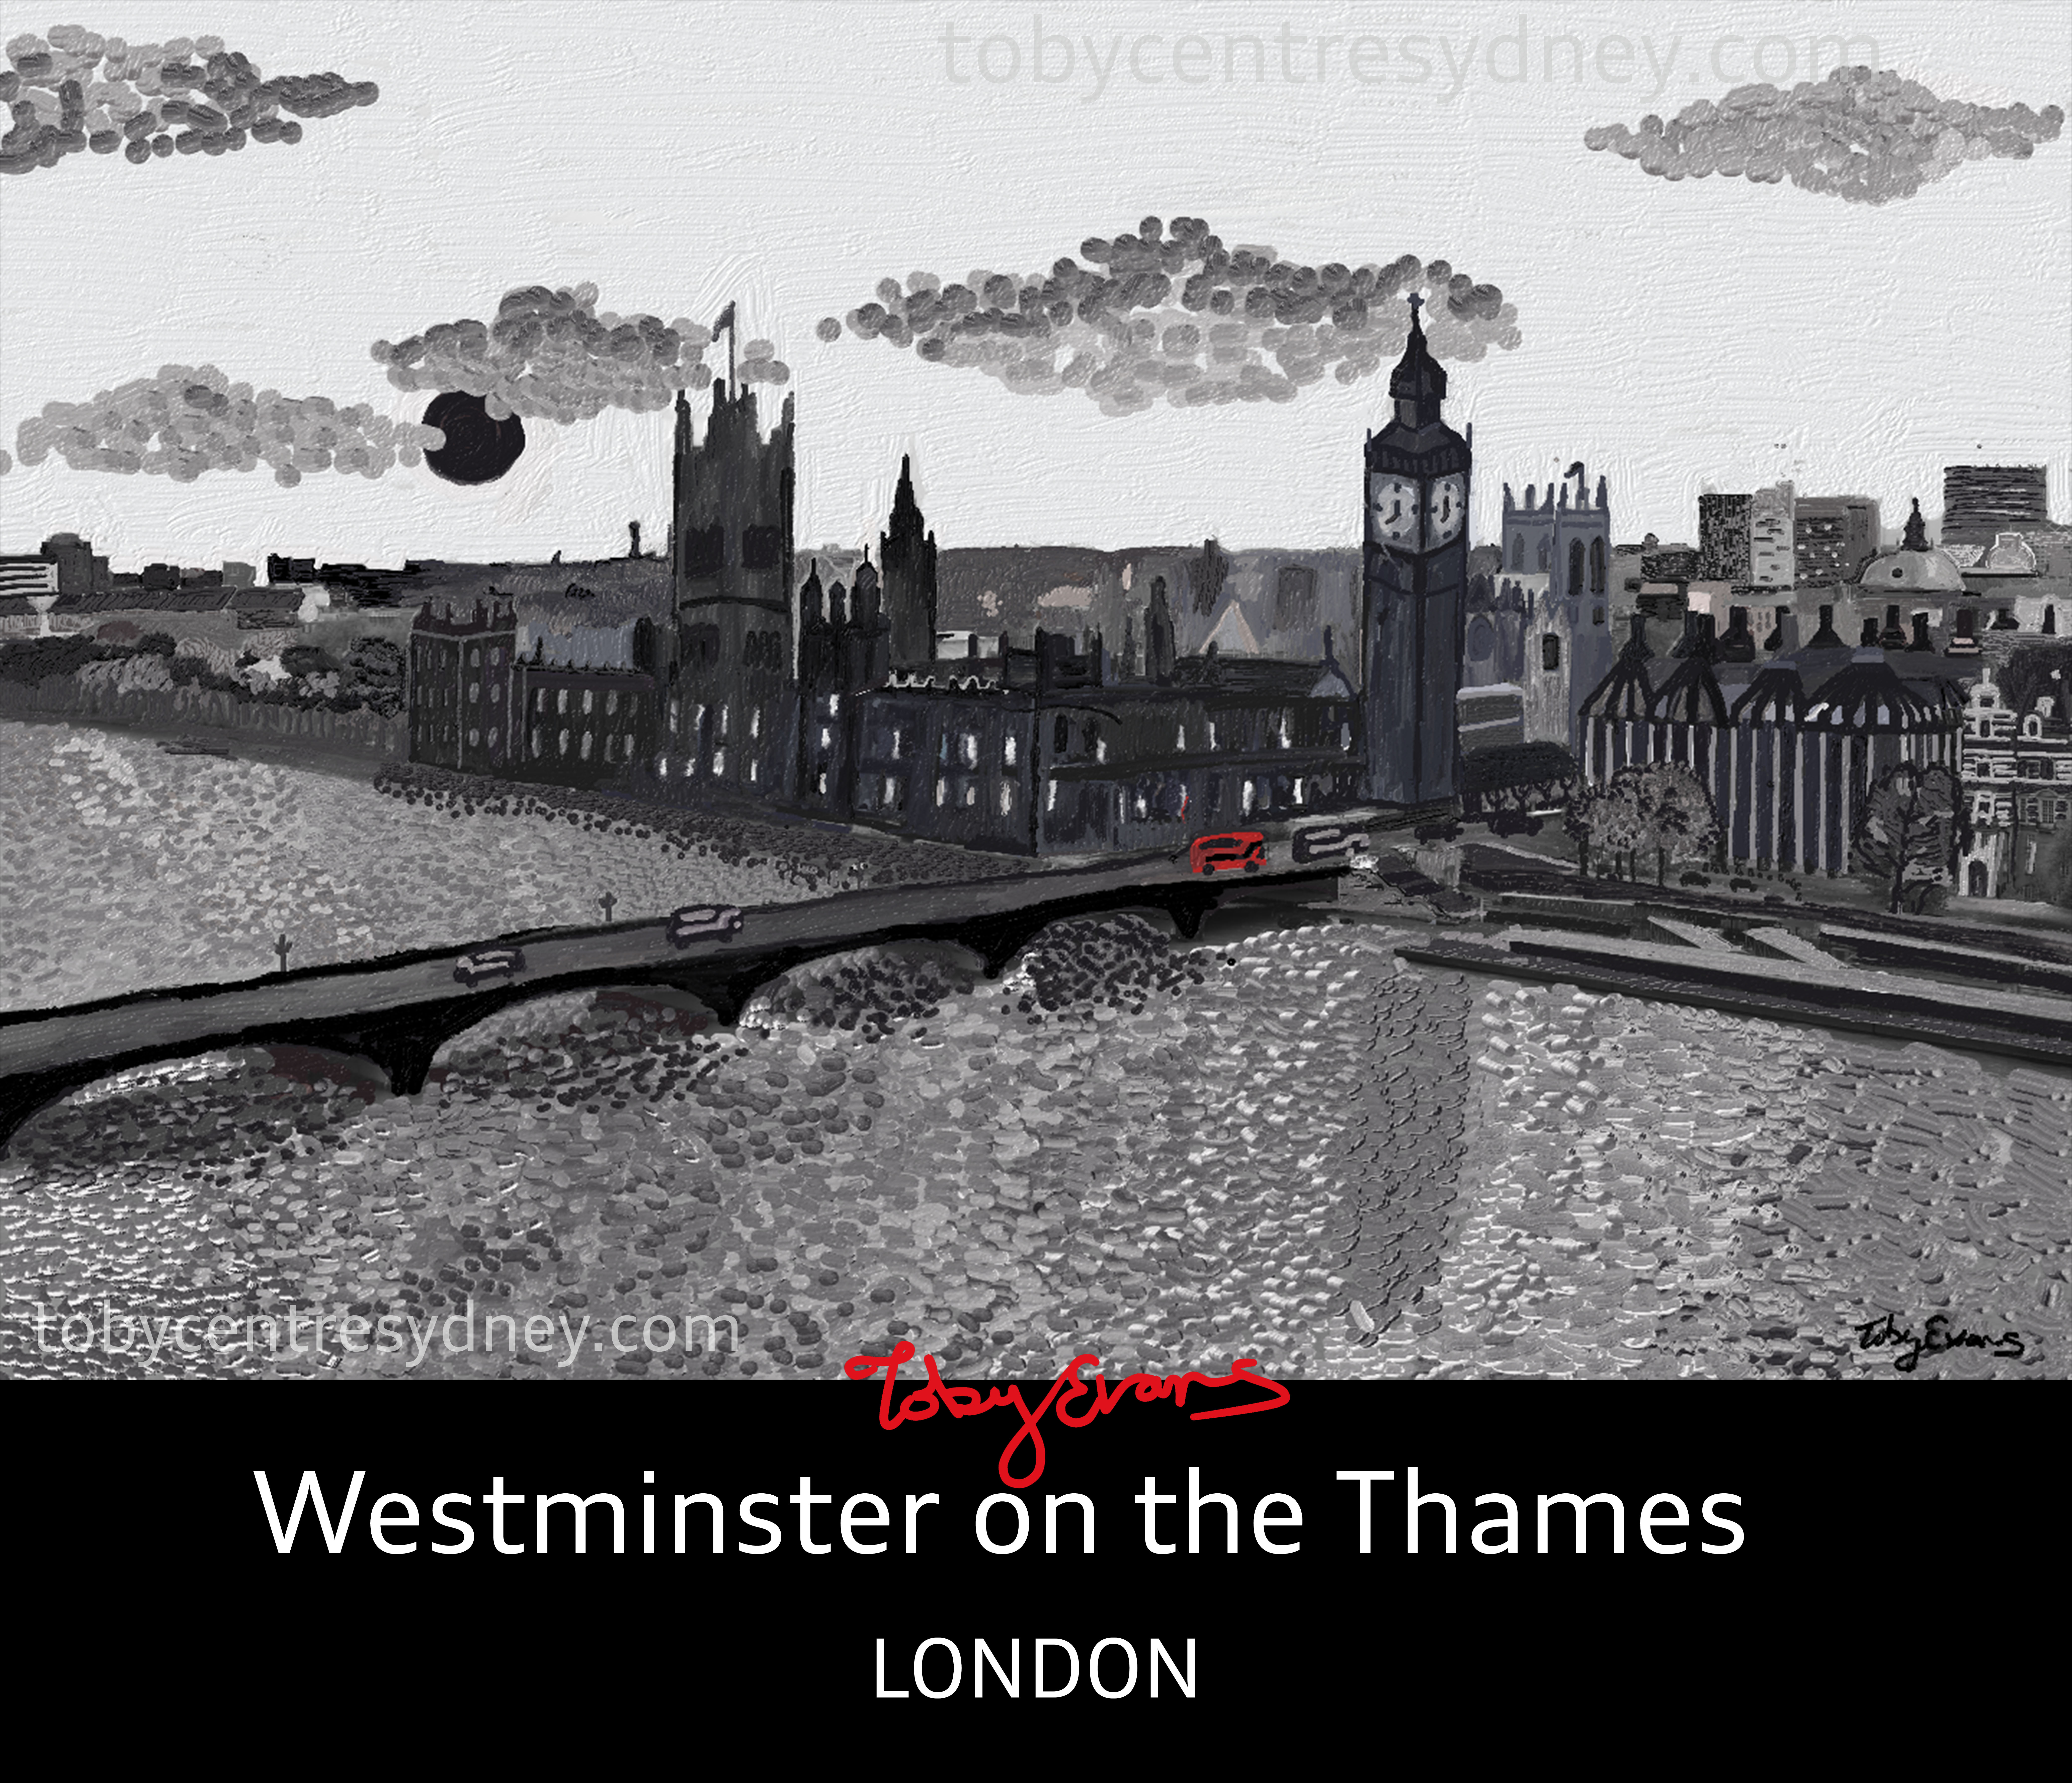 London, westminster